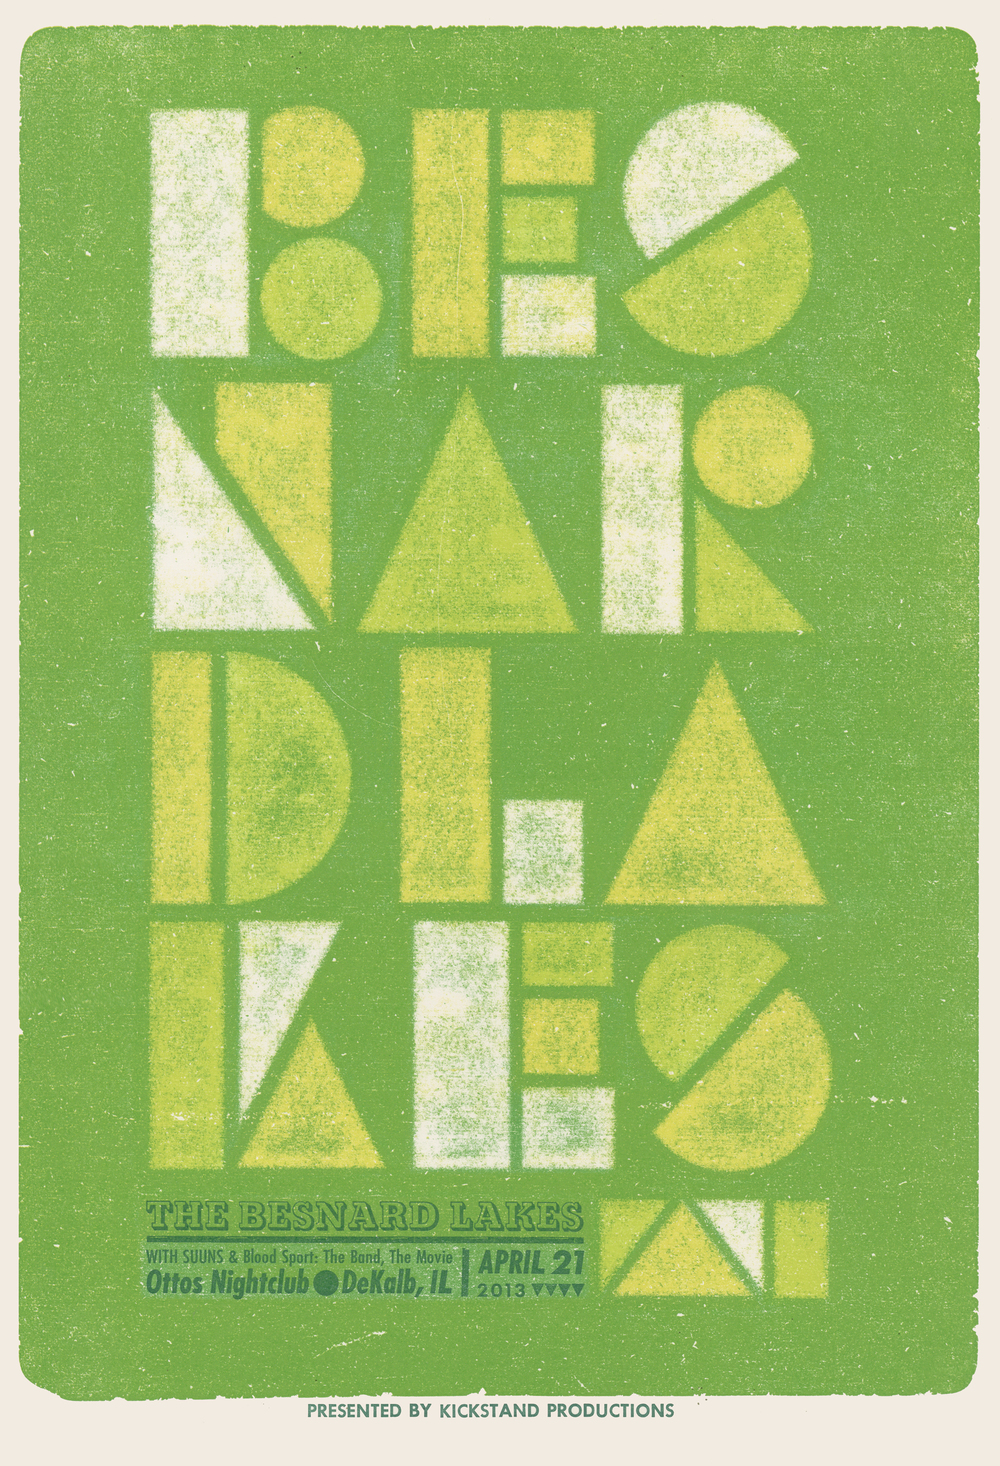 The Besnard Lakes, 4-color letterpress show poster, 2013